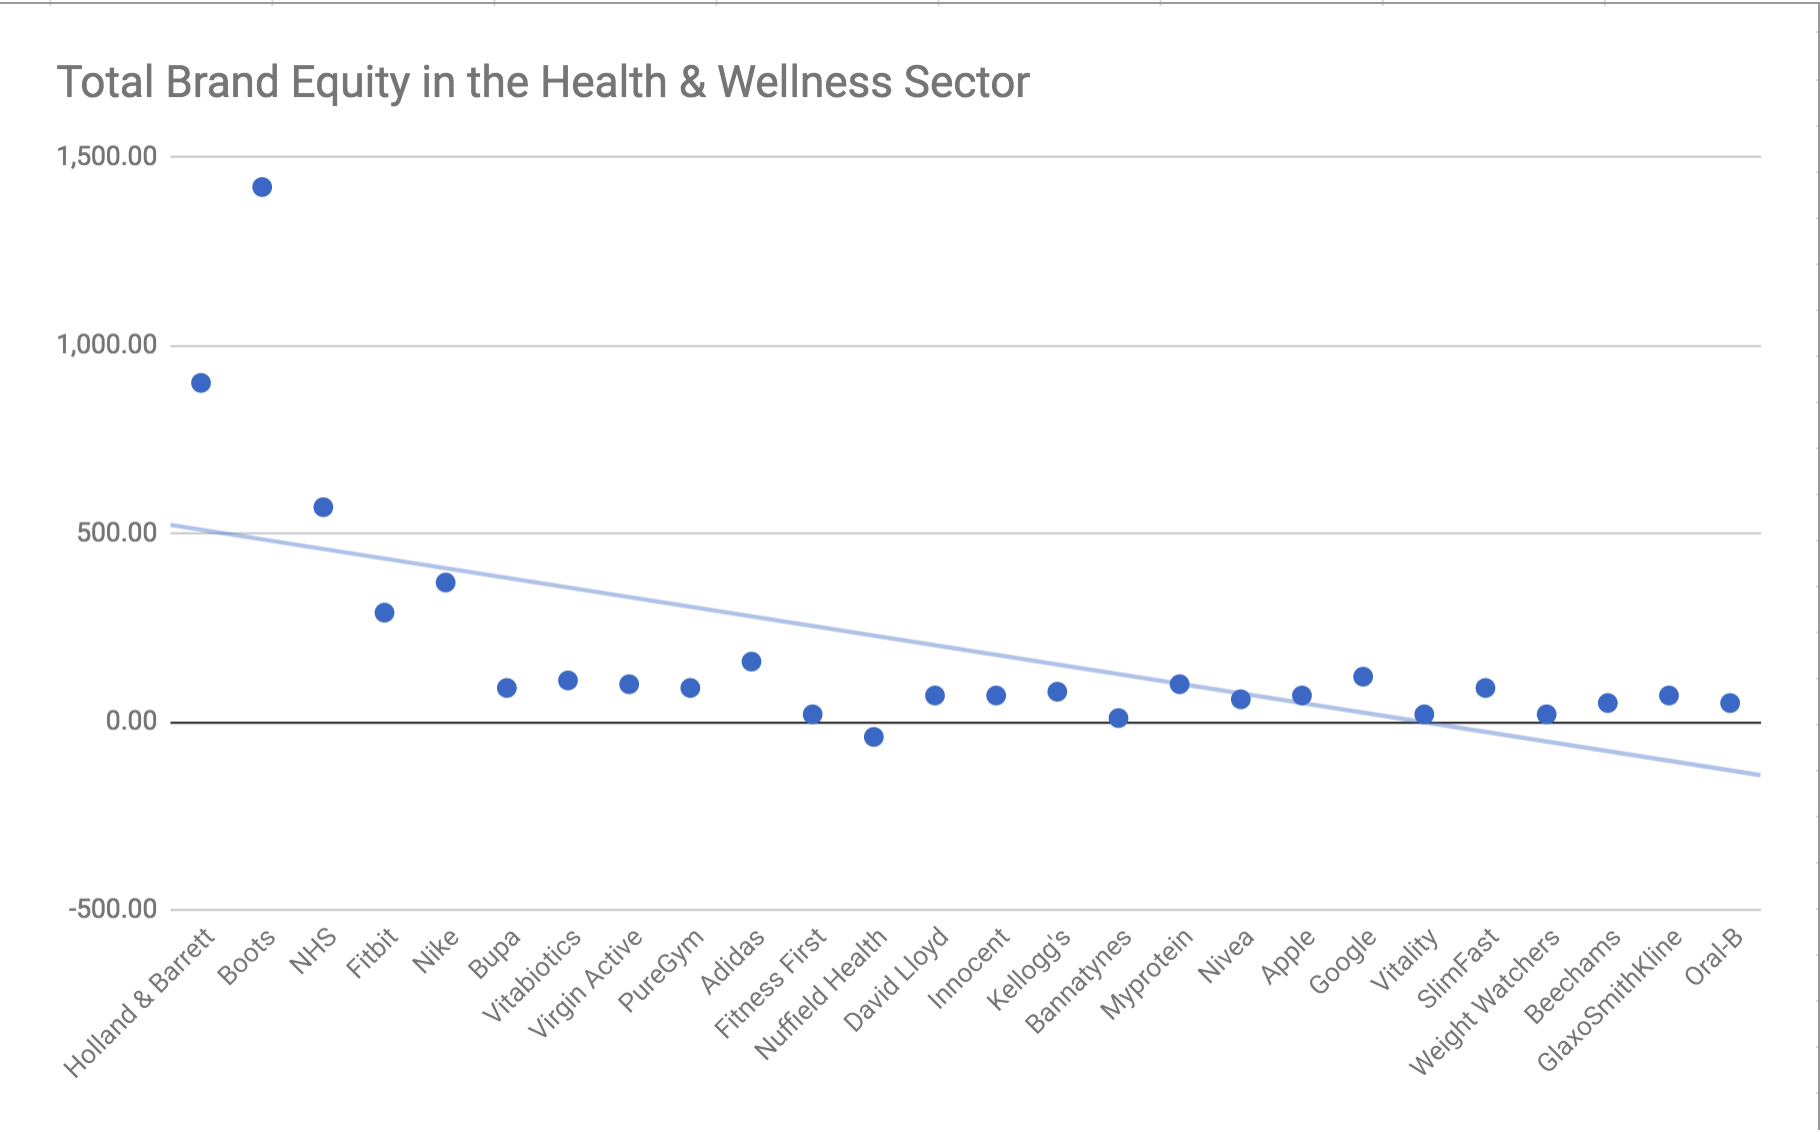 Total Brand Equity in Health & Wellness Sector